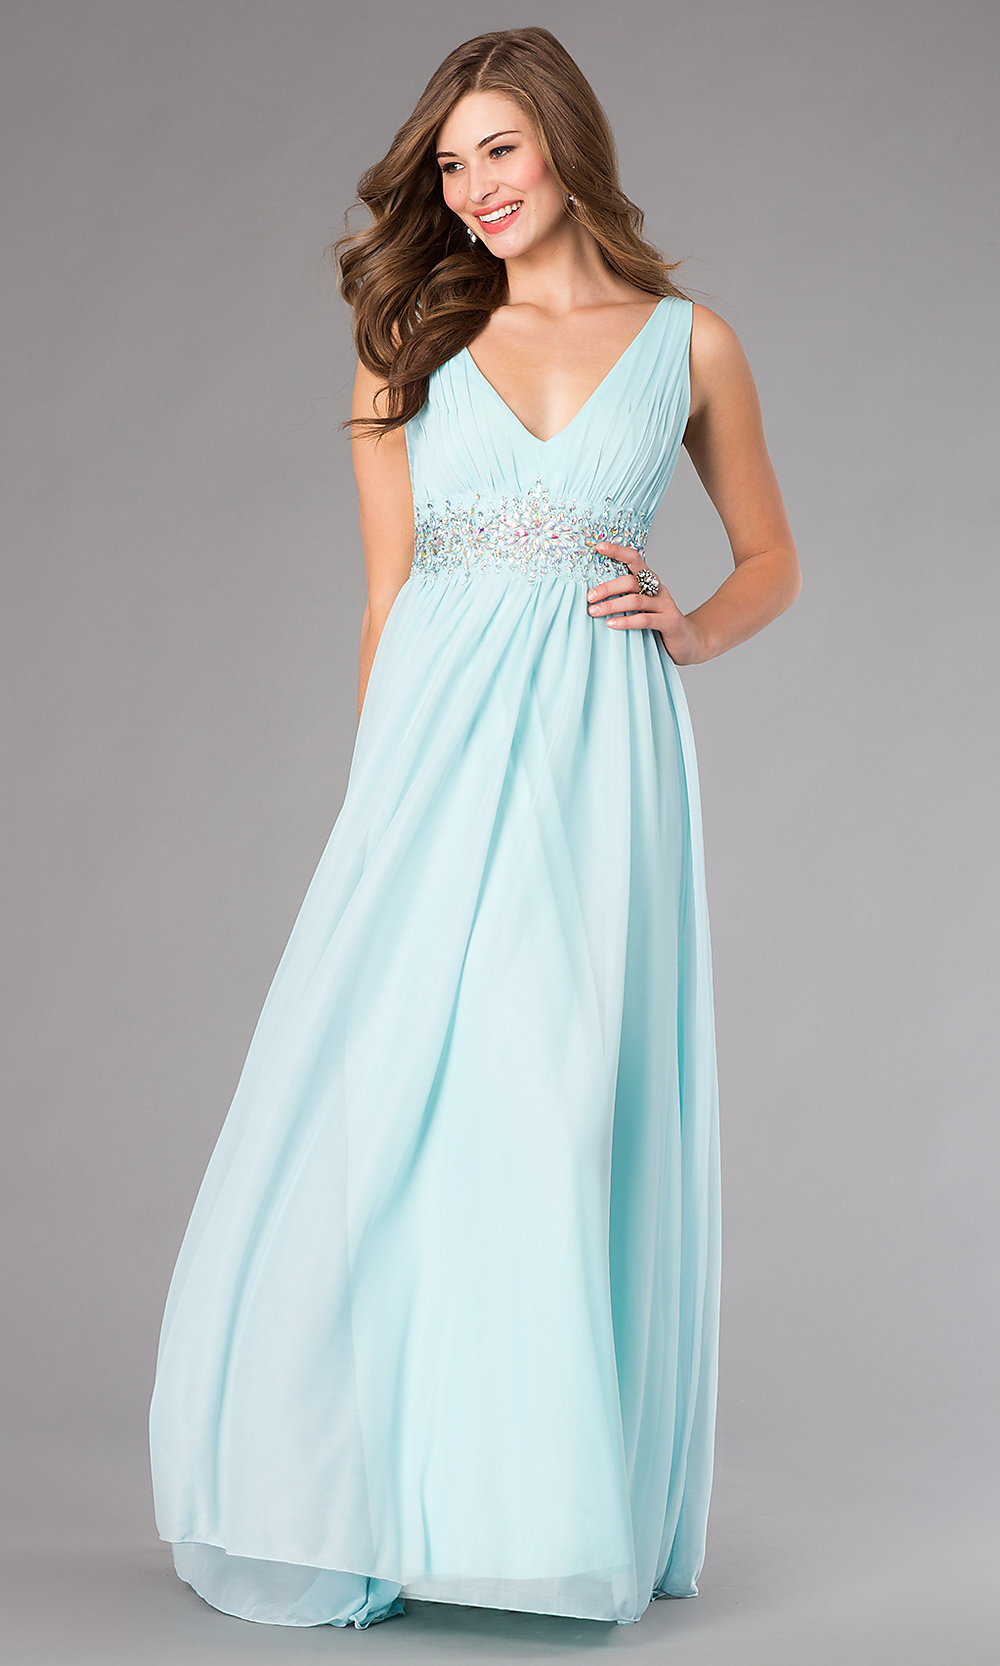 Jeweled Empire Waist Prom Dress - PromGirl